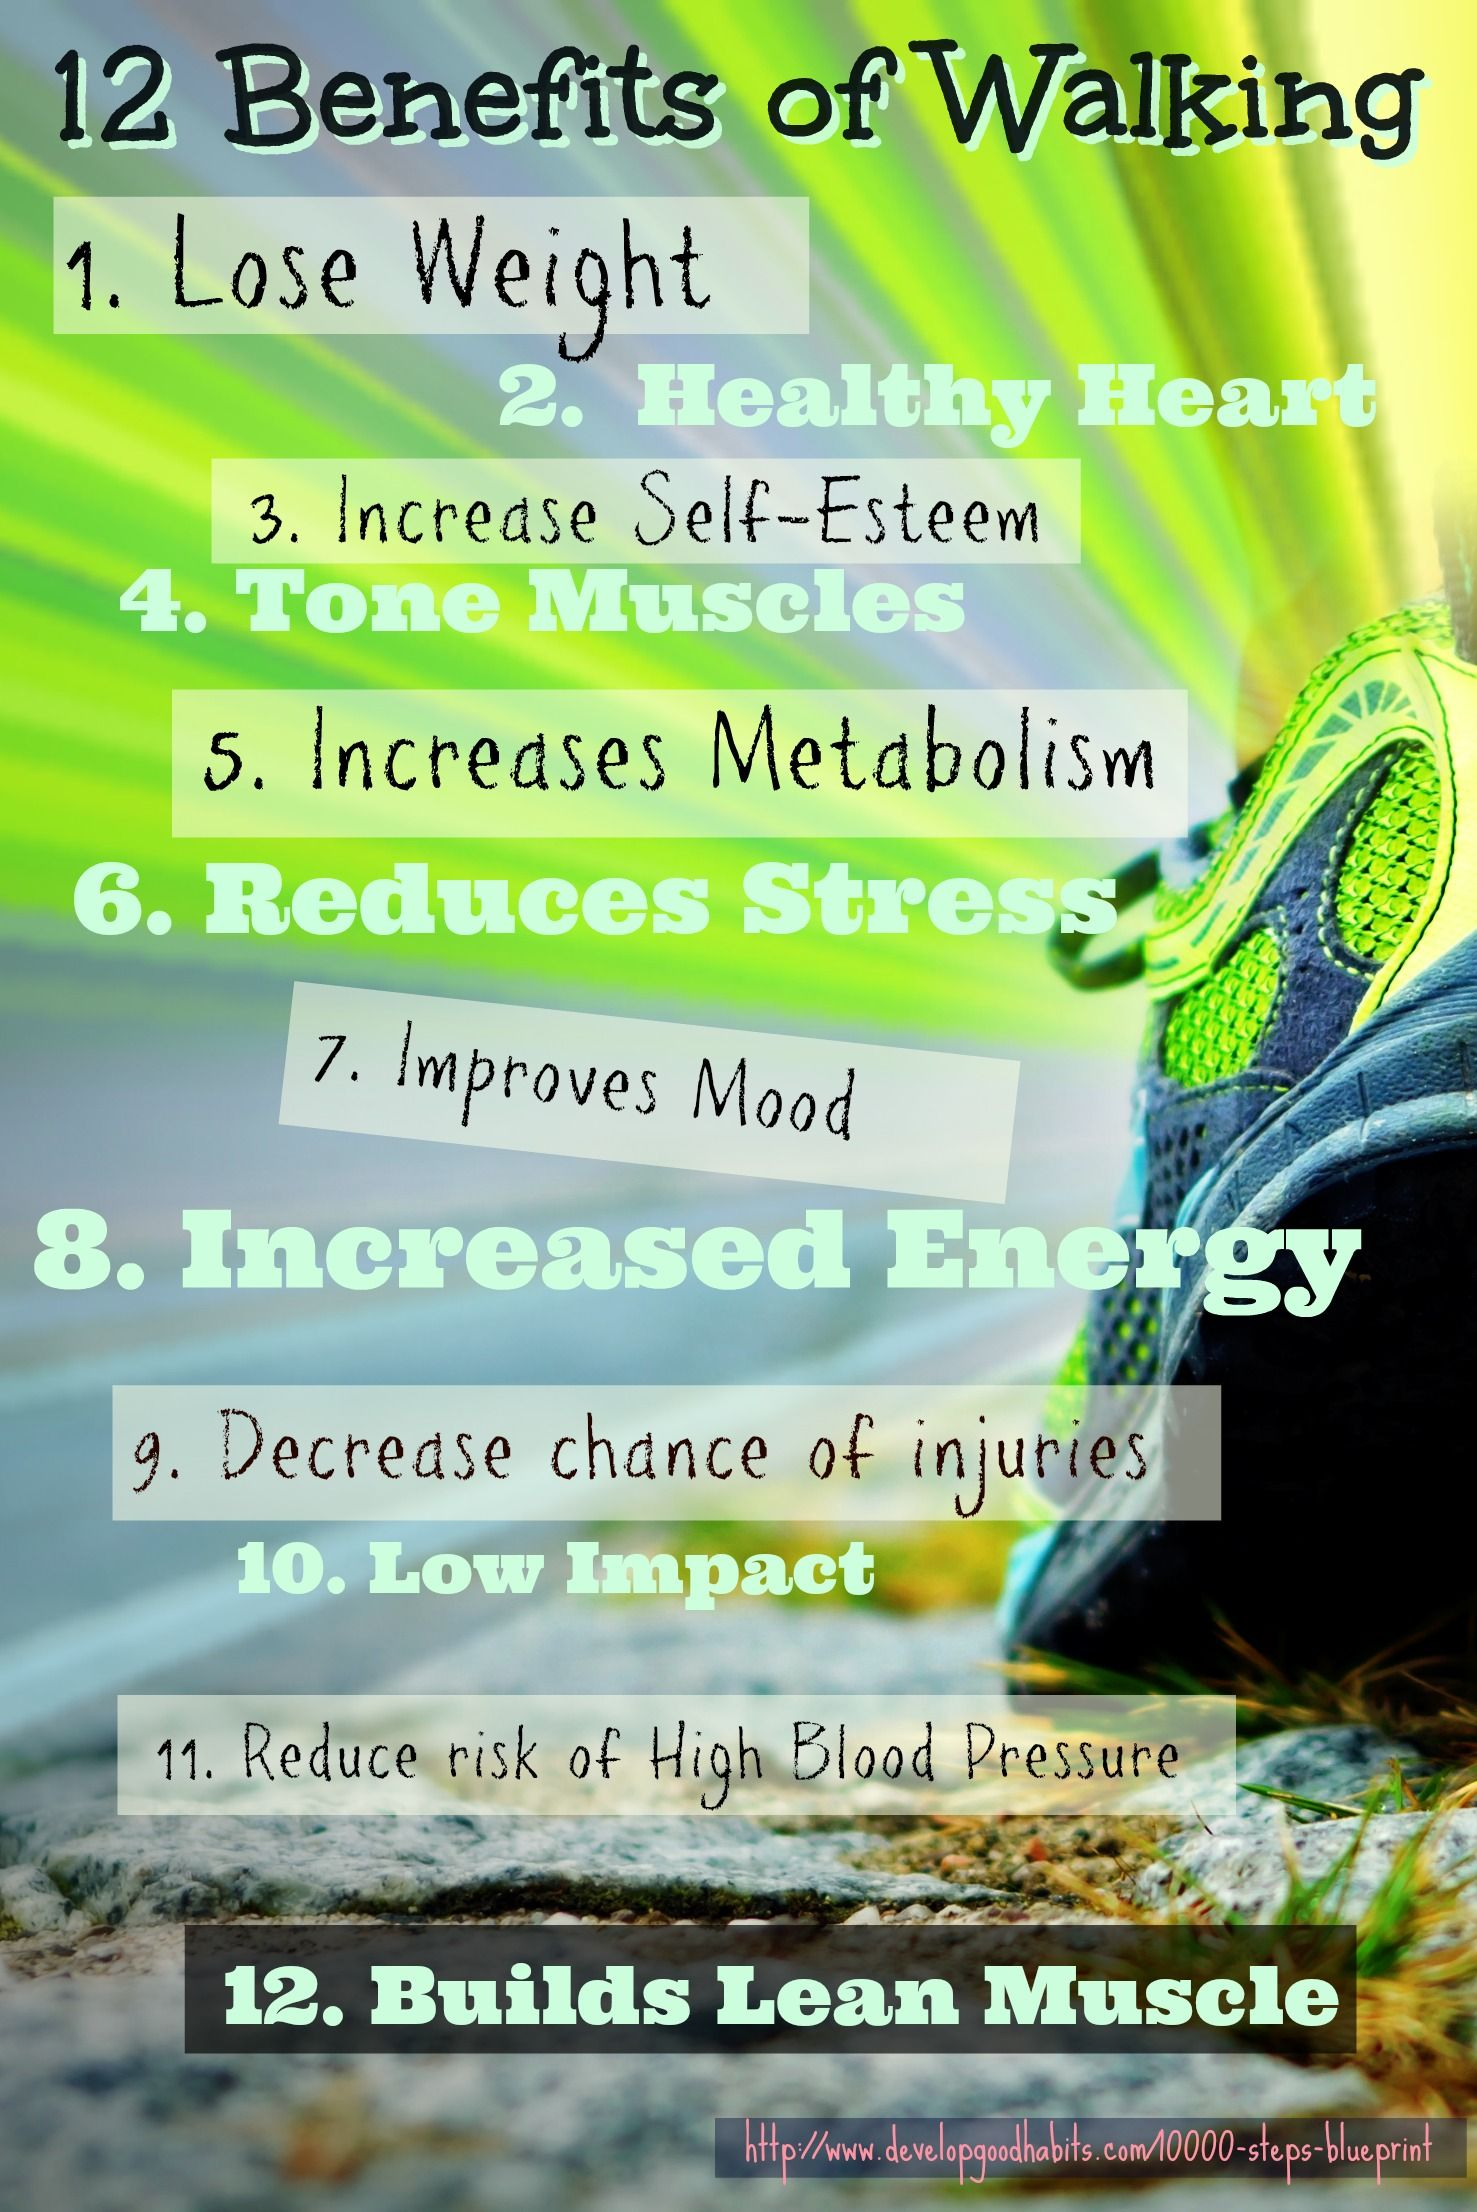 12 Benefits of Walking